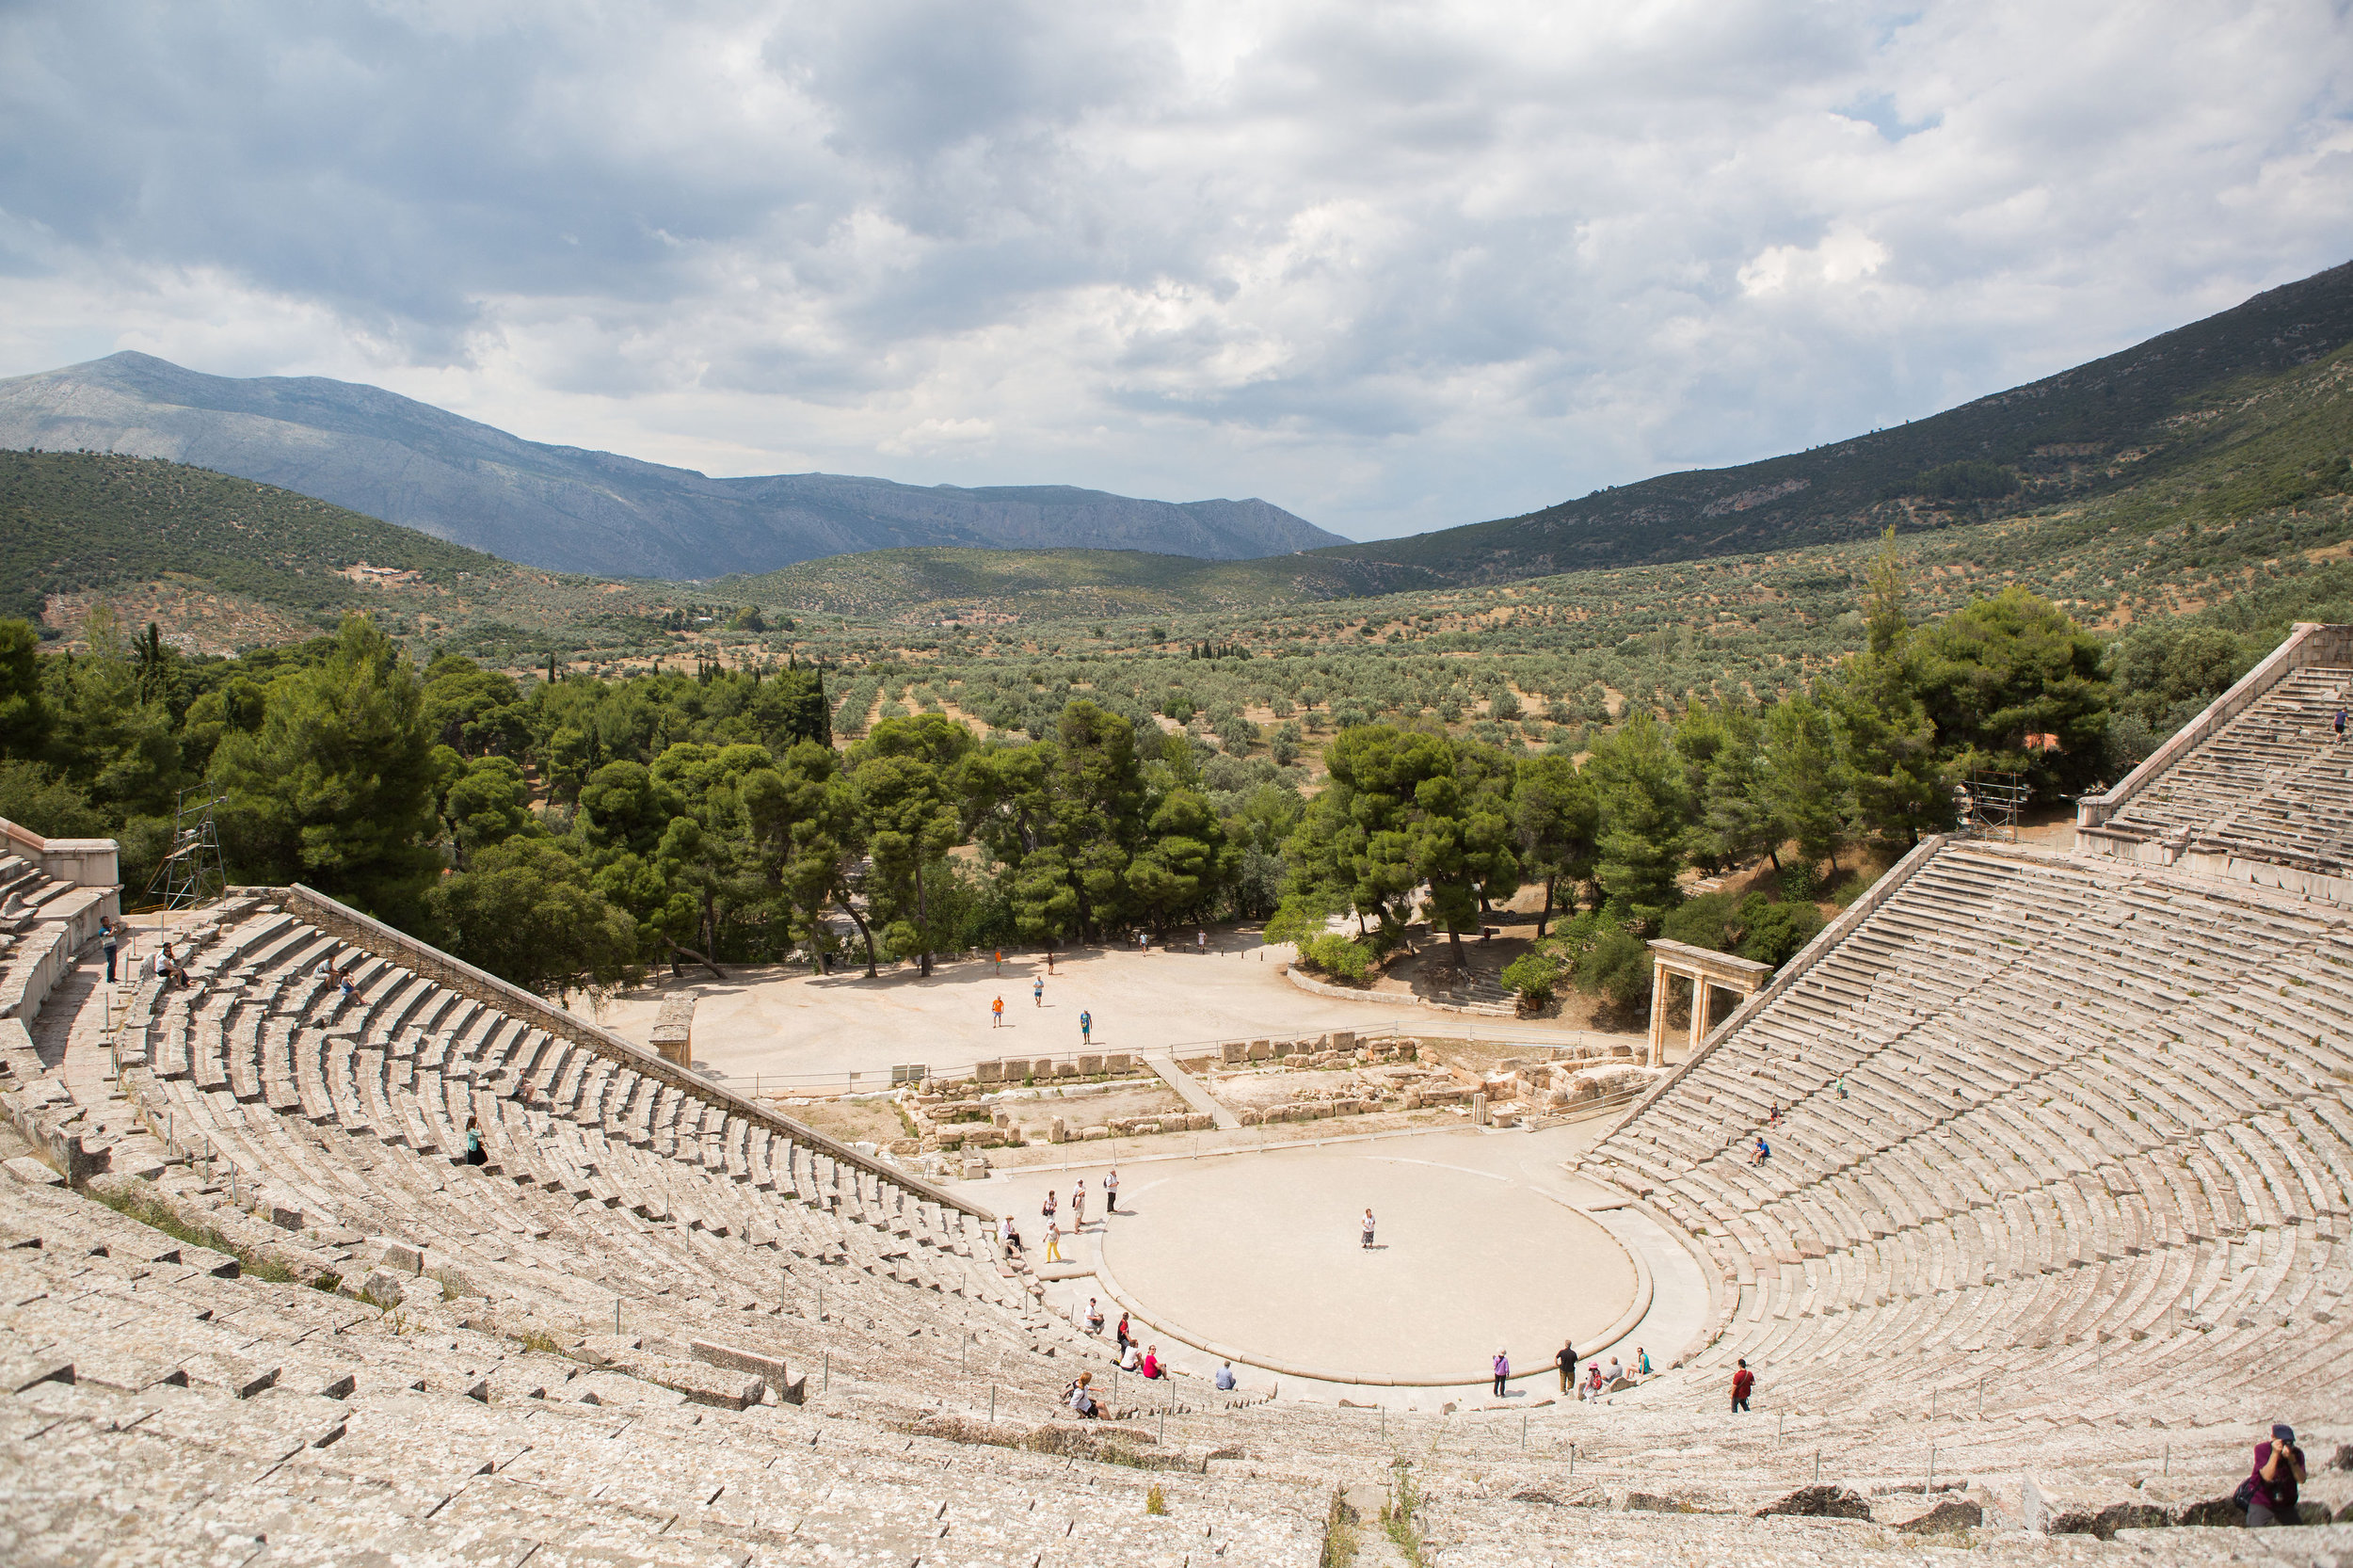 The Theater of Epidavros